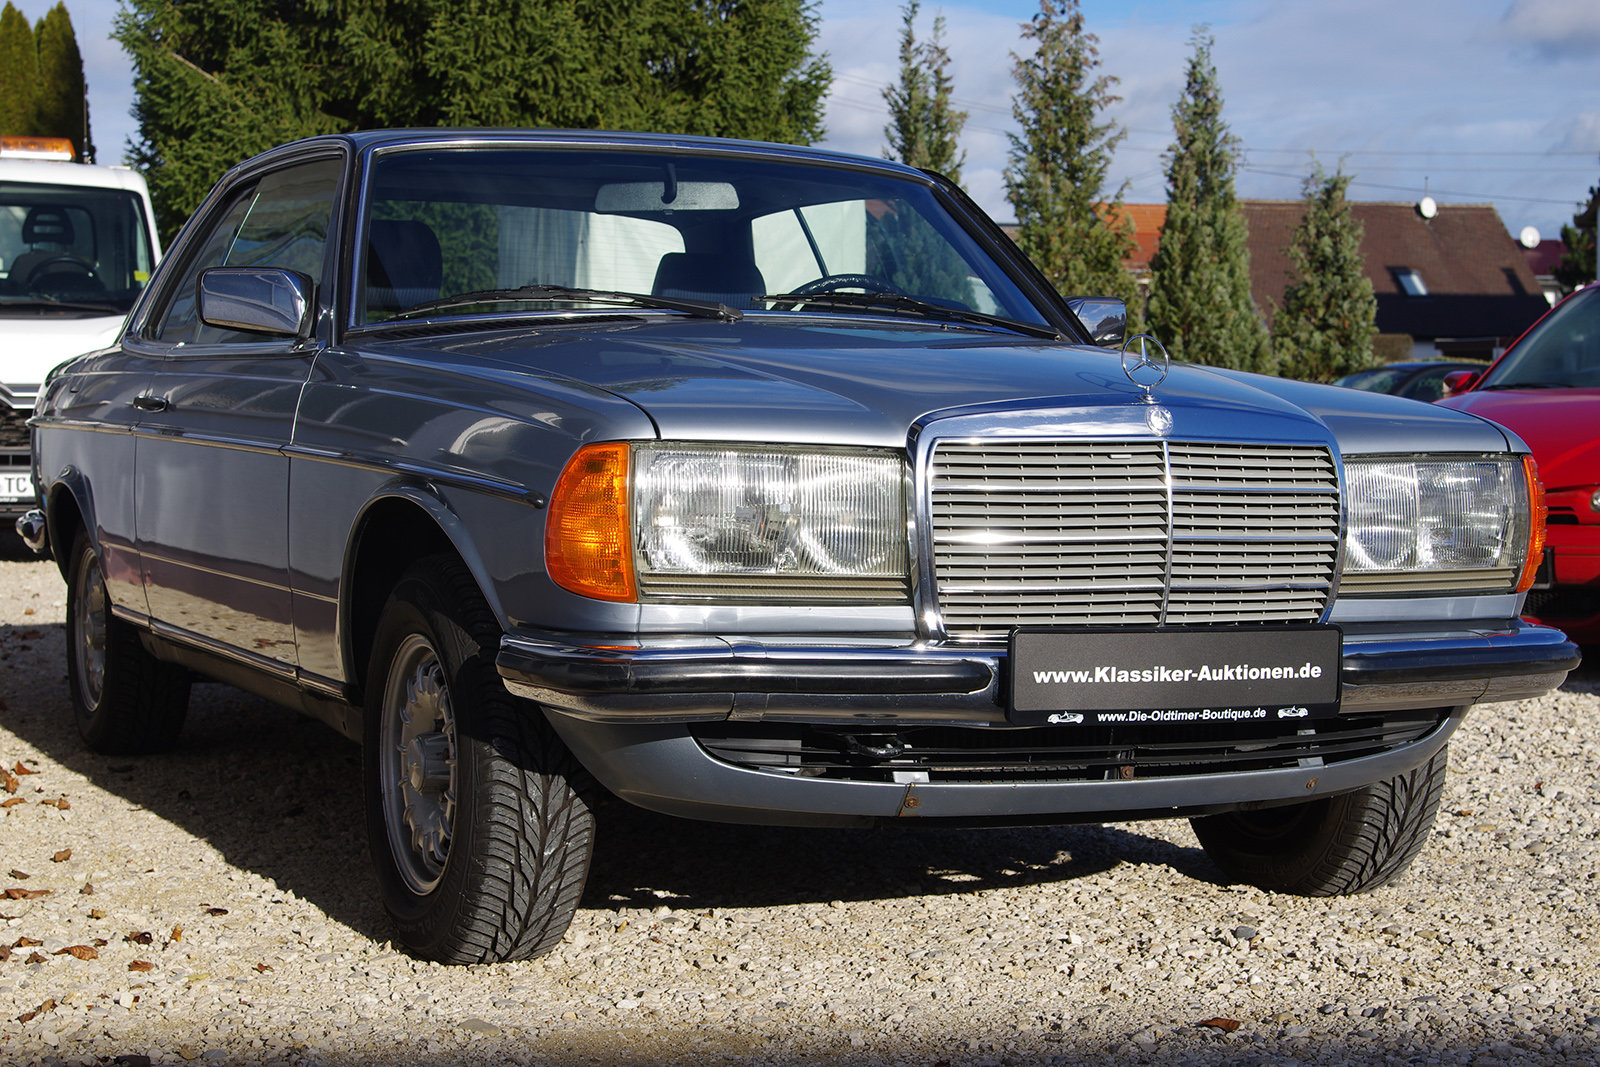 1983 Mercedes-Benz 230 CE - C123 - LHD - only 3 owners in 35 year For Sale (picture 2 of 6)